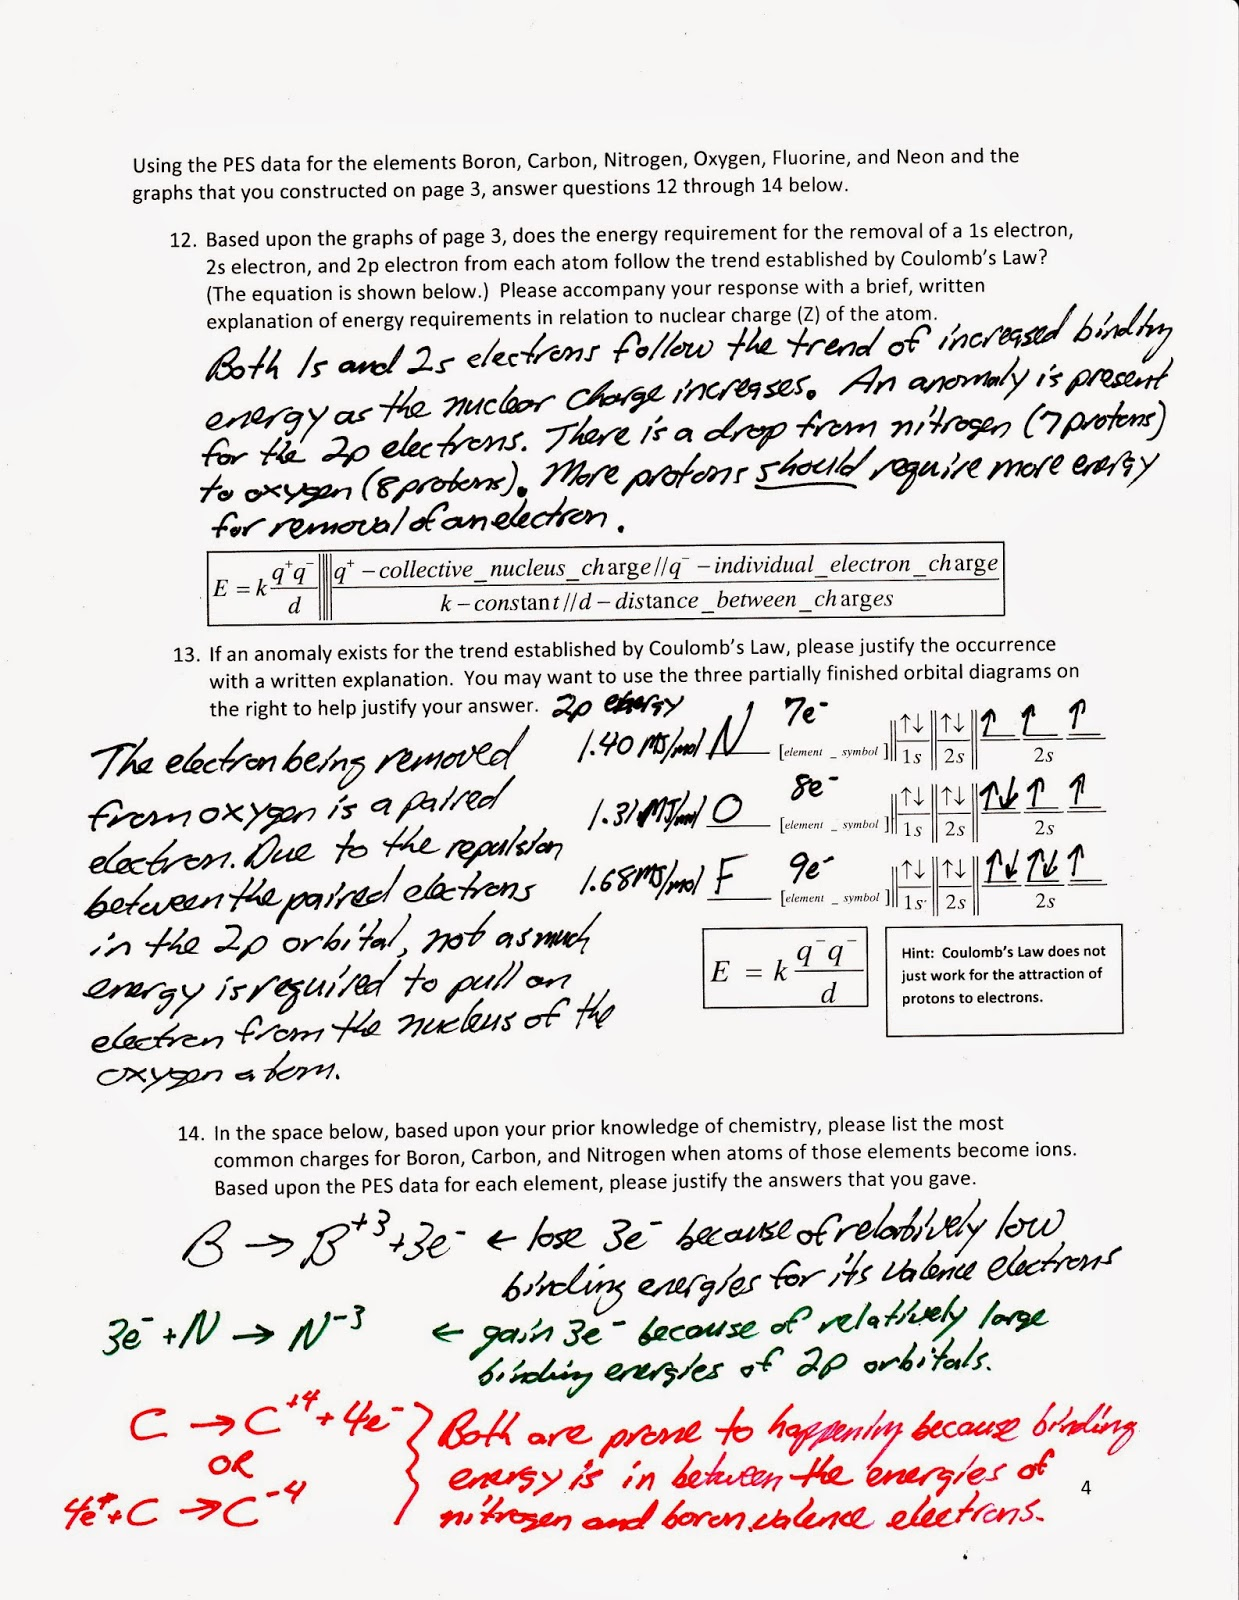 worksheet Chemistry Worksheet Answers 100 nuclear chemistry worksheet answers alpha and beta liver onions are super iv october 2014